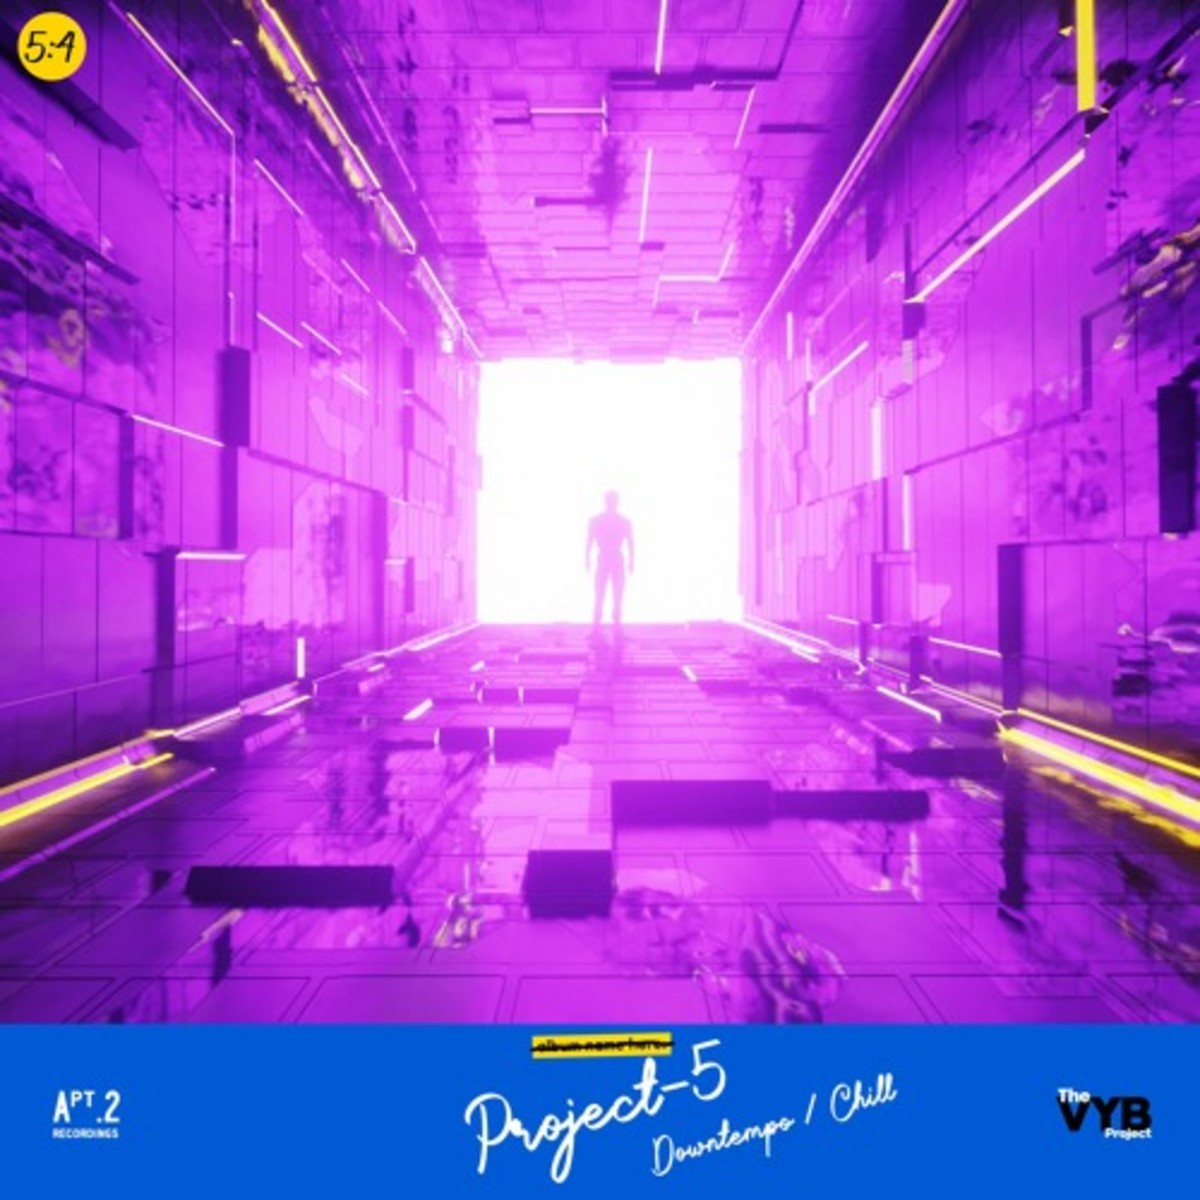 synth-single-review-chill-by-the-vyb-project